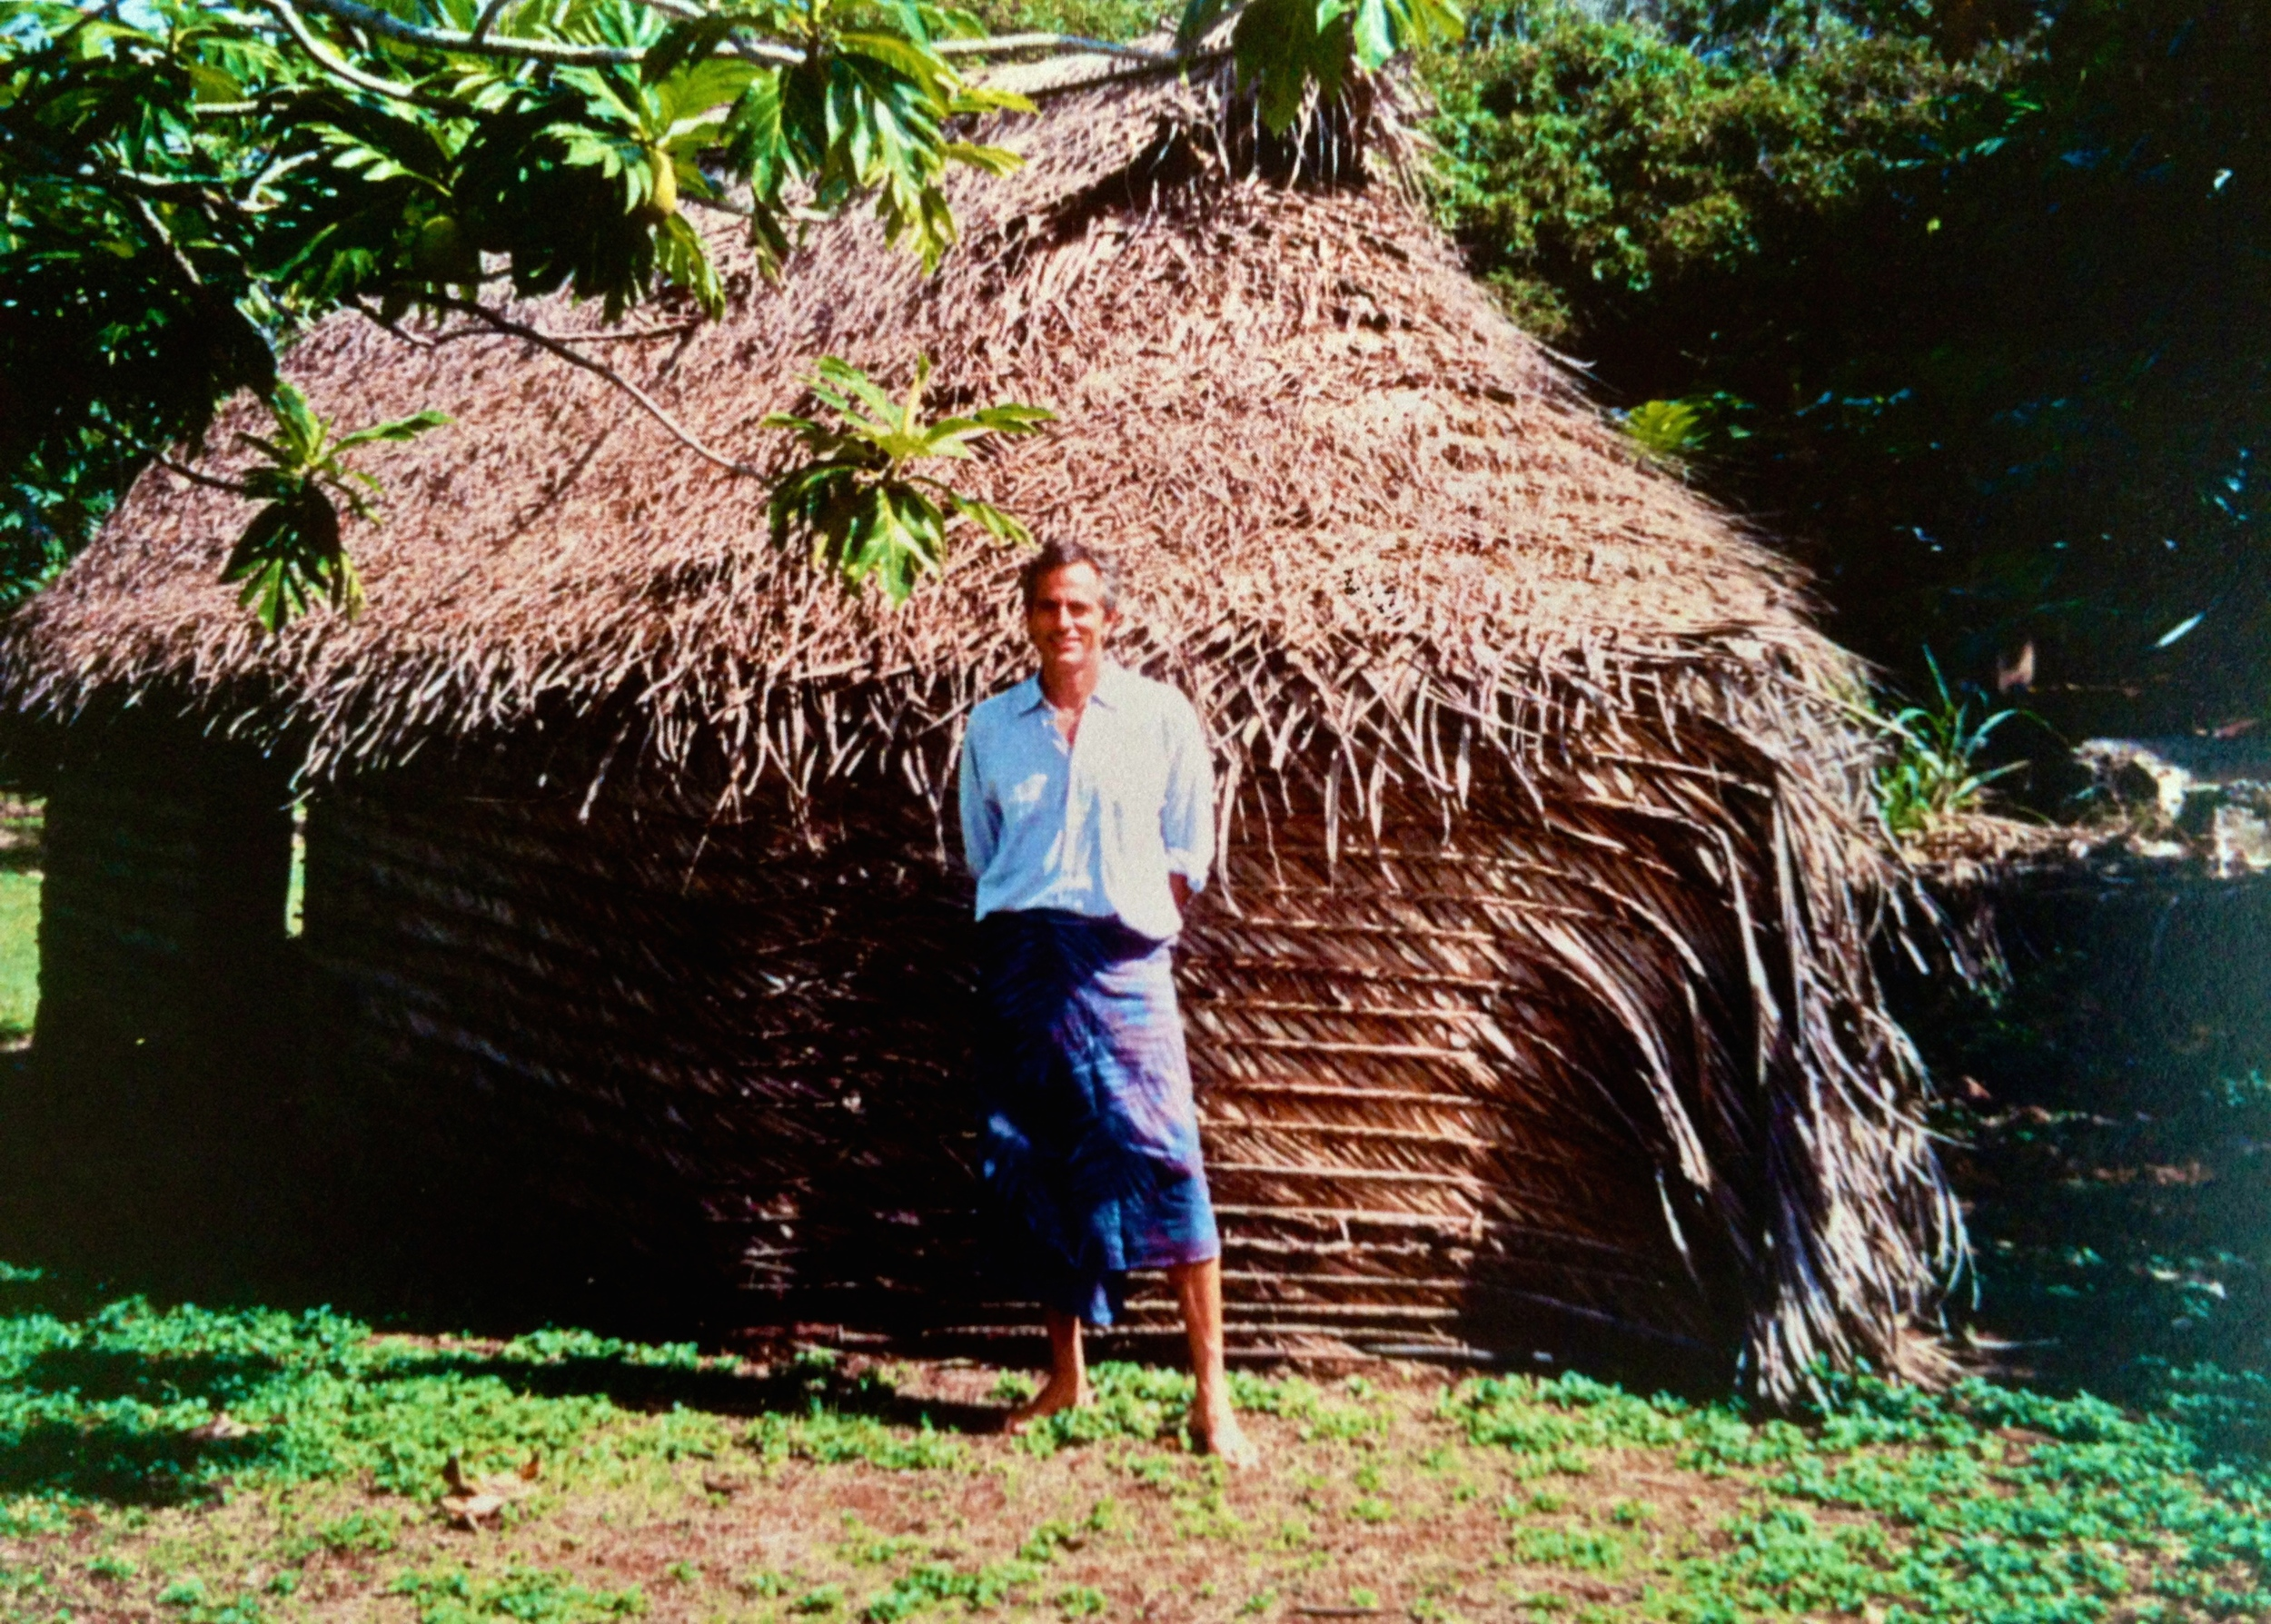 Indigenous hand-woven home from palm fronds in Lau Group, Figi